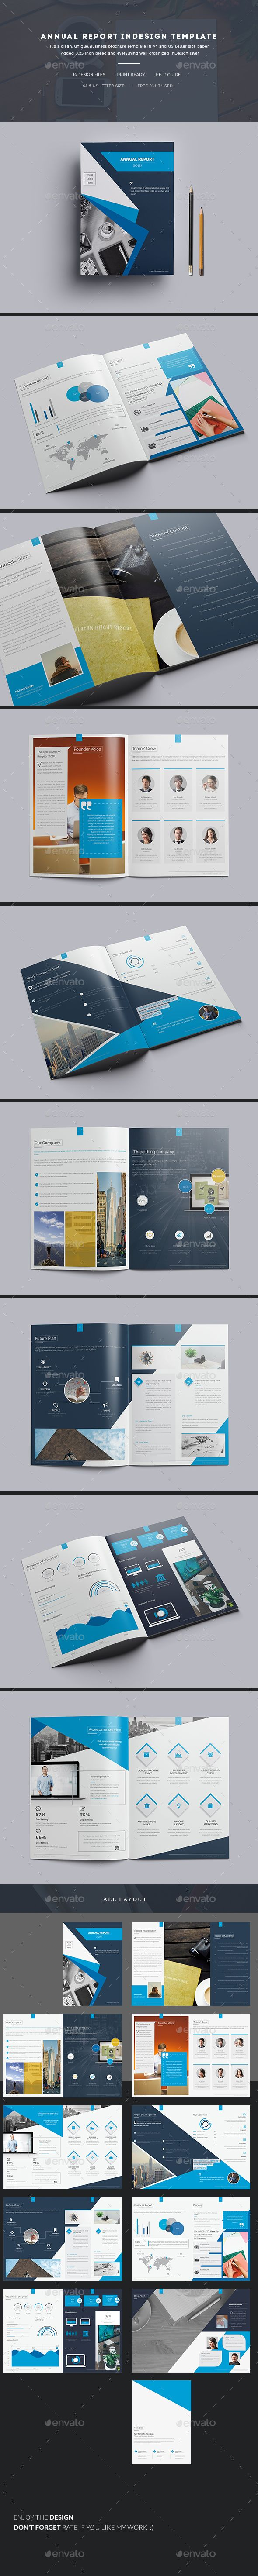 Annual Report Indesign Template | Diseño editorial, Editorial y ...